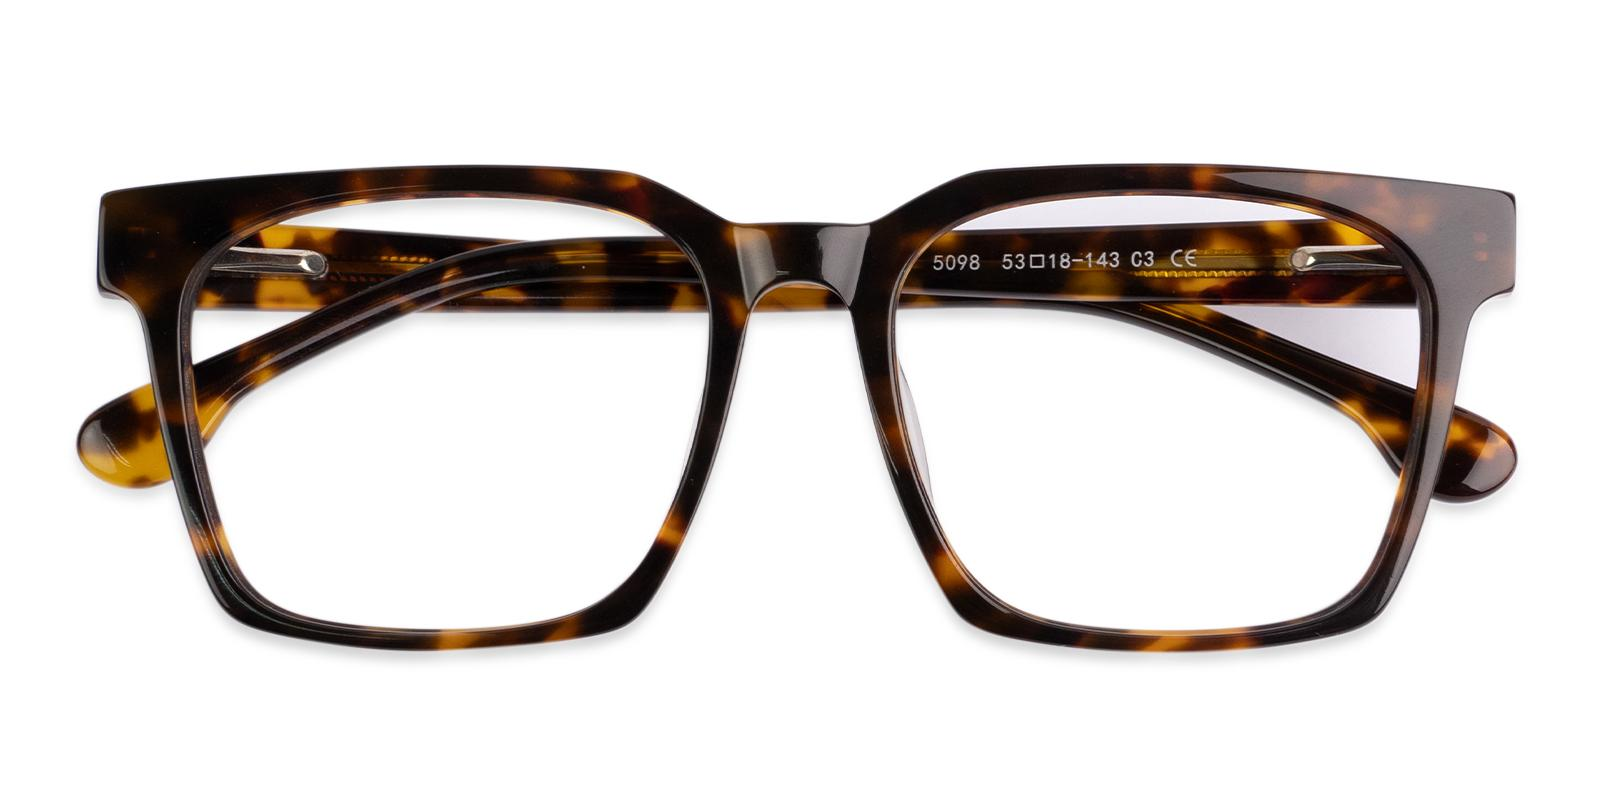 Gilbert Tortoise Acetate Eyeglasses , UniversalBridgeFit Frames from ABBE Glasses